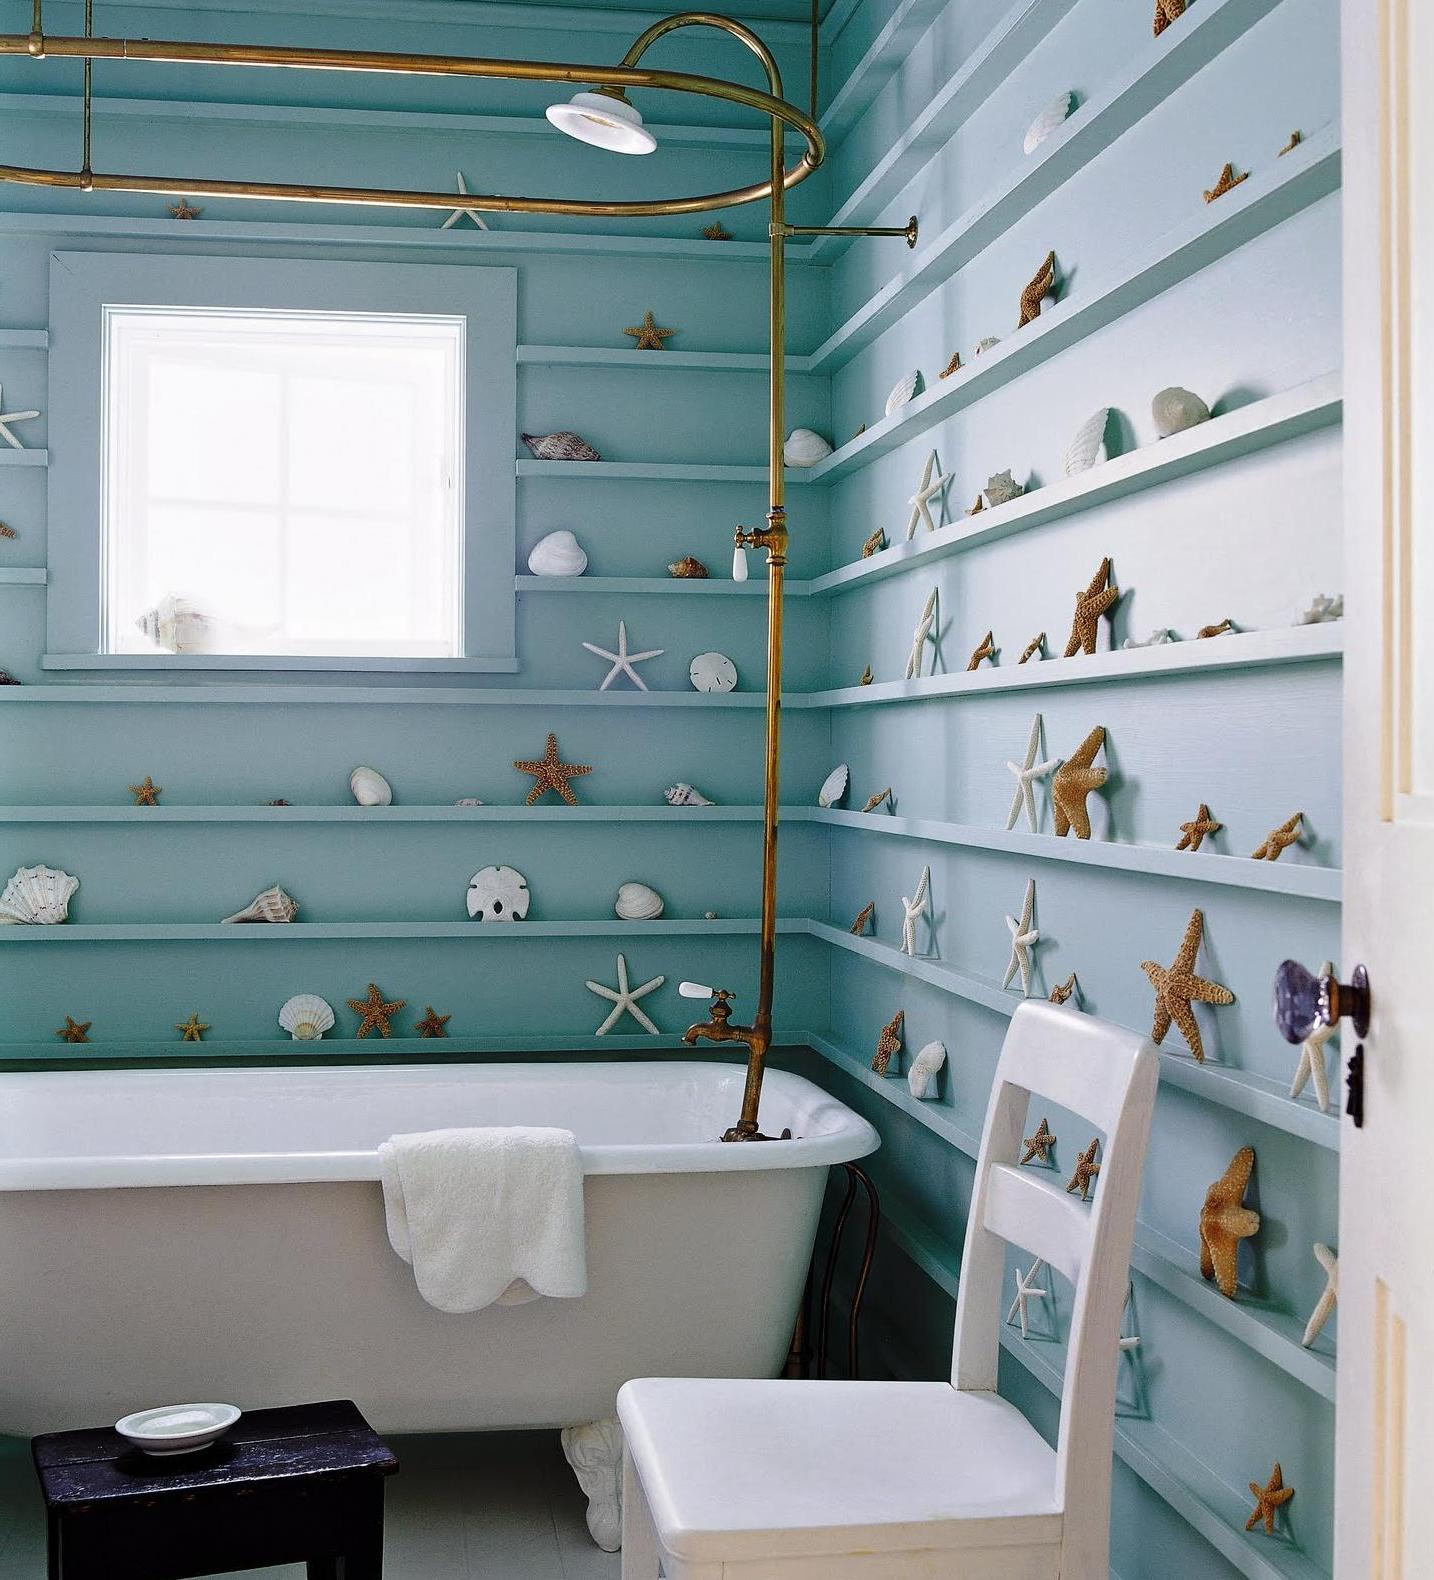 10 beach house decor ideas for Beach decor bathroom ideas